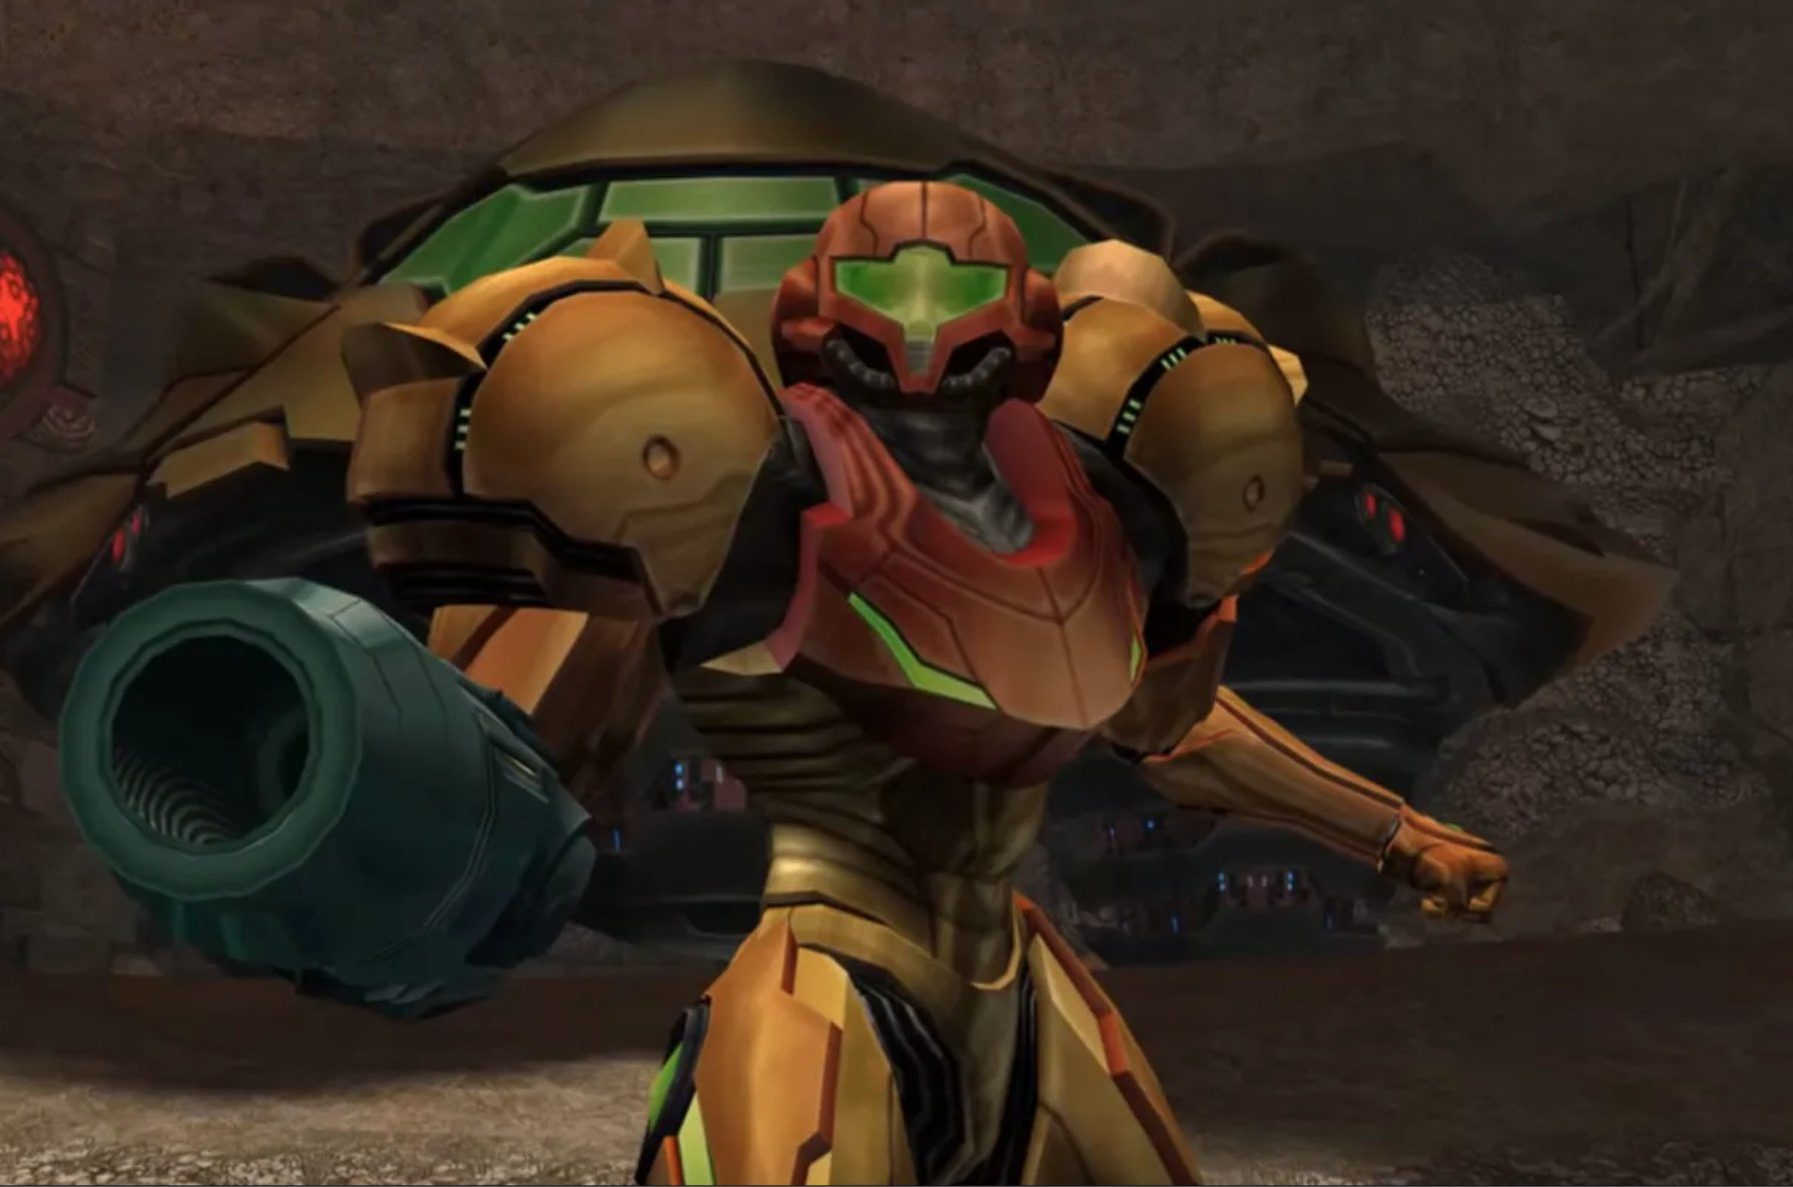 metroid prime 2 4k.original e1605263268804 20 Video Games You Never Knew Were Inspired By Famous Movies